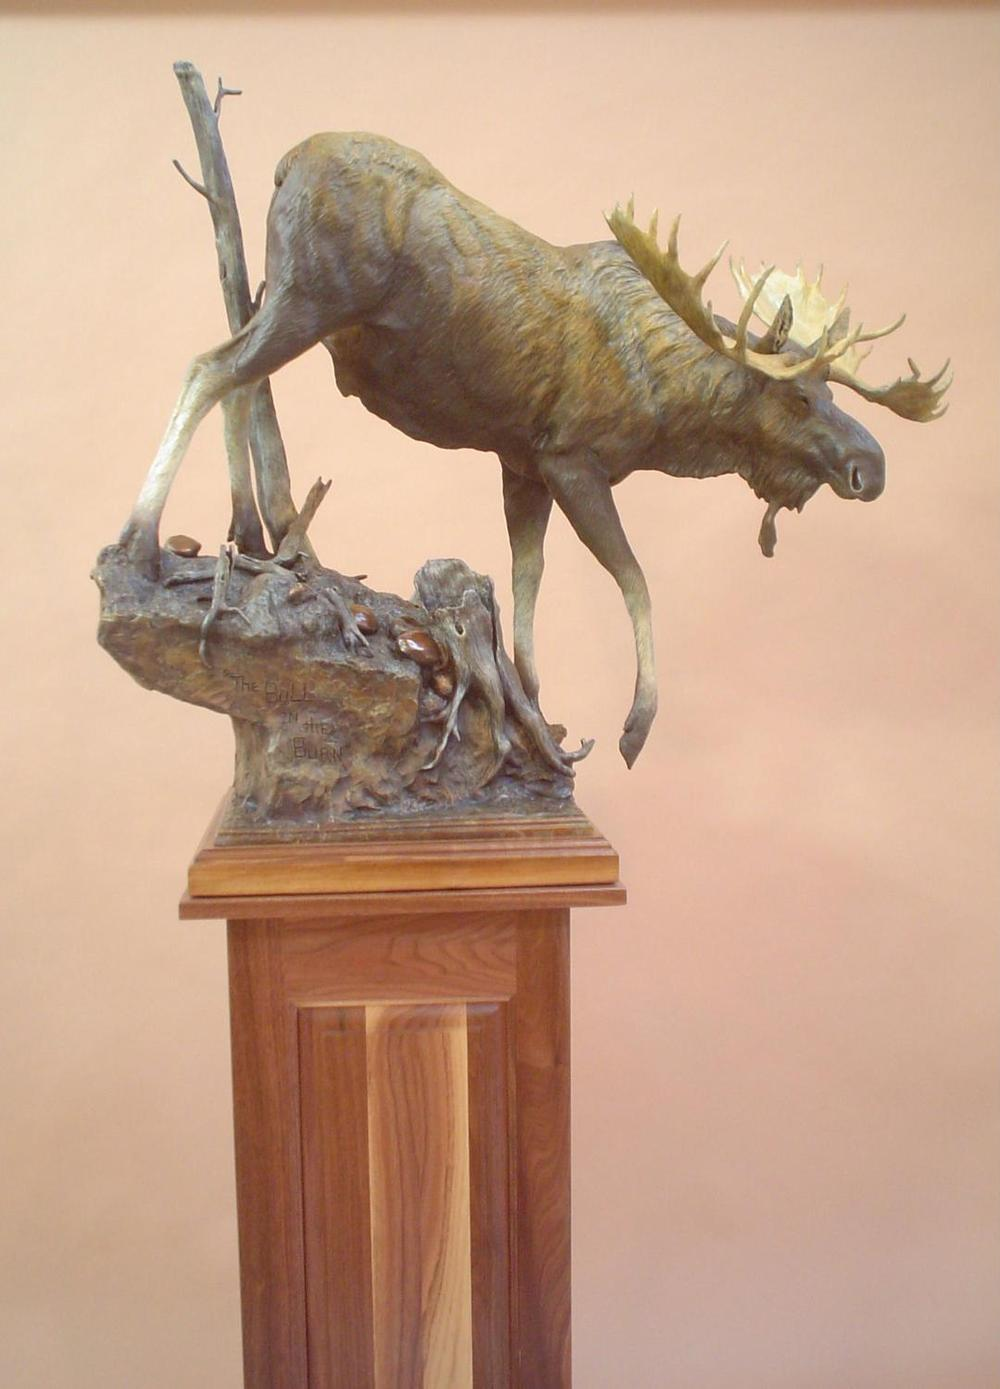 Bull in the Burn<br> Bull Moose Sculpture by Sam Terakedis - Art Castings of Montana, Inc. Sam Terakedis Art Casting Foundry